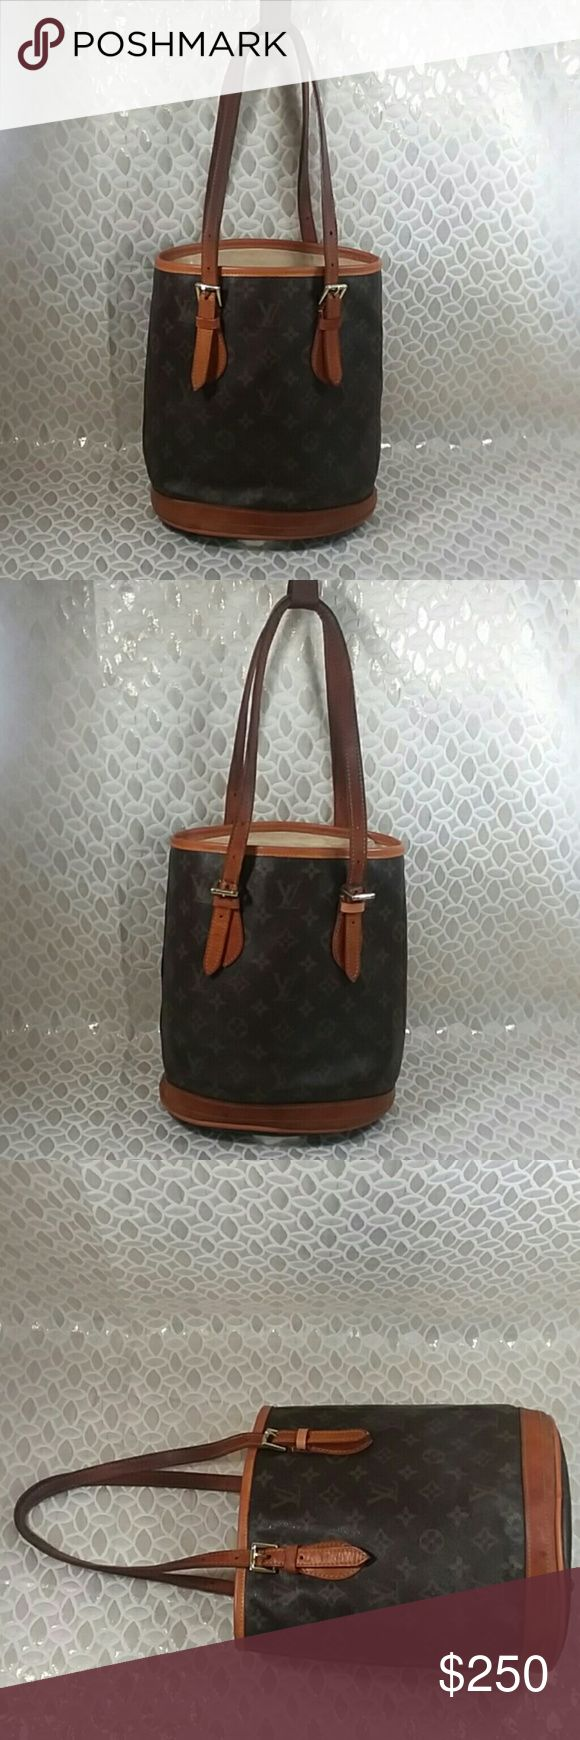 Authentic Louis Vuitton Monogram Bucket Brown Bag. The inside linen was restitched. The bag was made in France with a date code SD 0090. Straps and leather showed signs of used as the bag was preowned. Canvas is good. The dimension is 10, 6 and 8. Louis Vuitton Bags Shoulder Bags